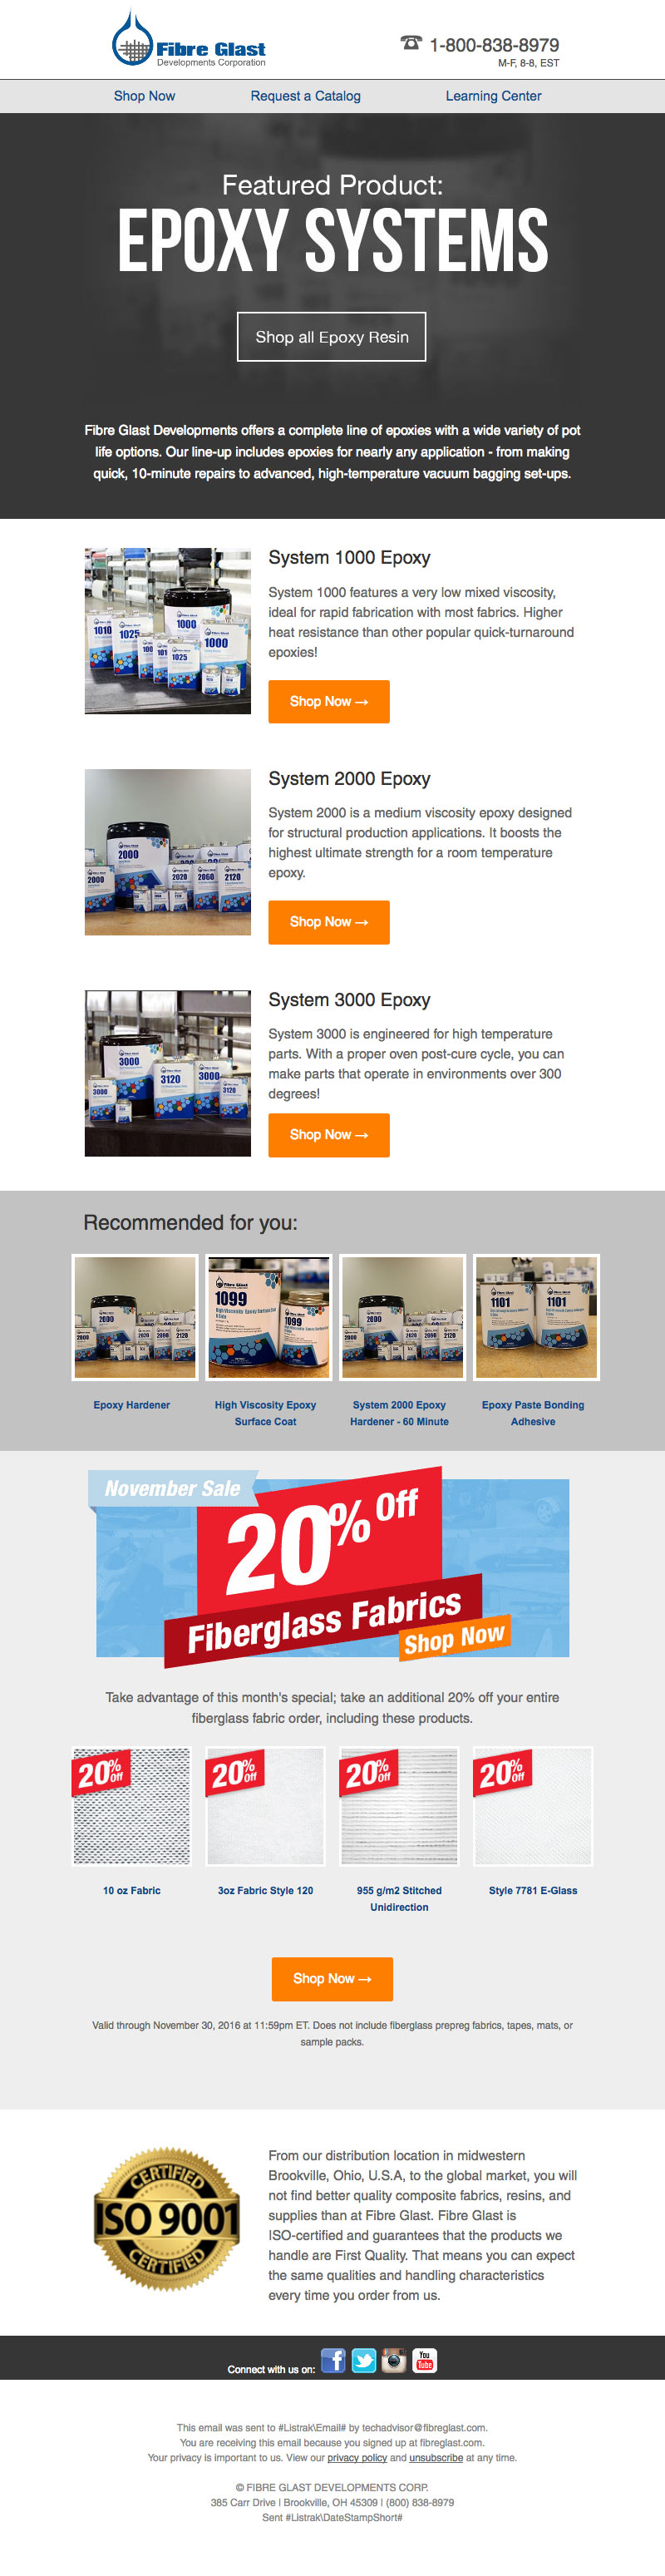 Fibre Glast Email Featured Product Epoxy Systems